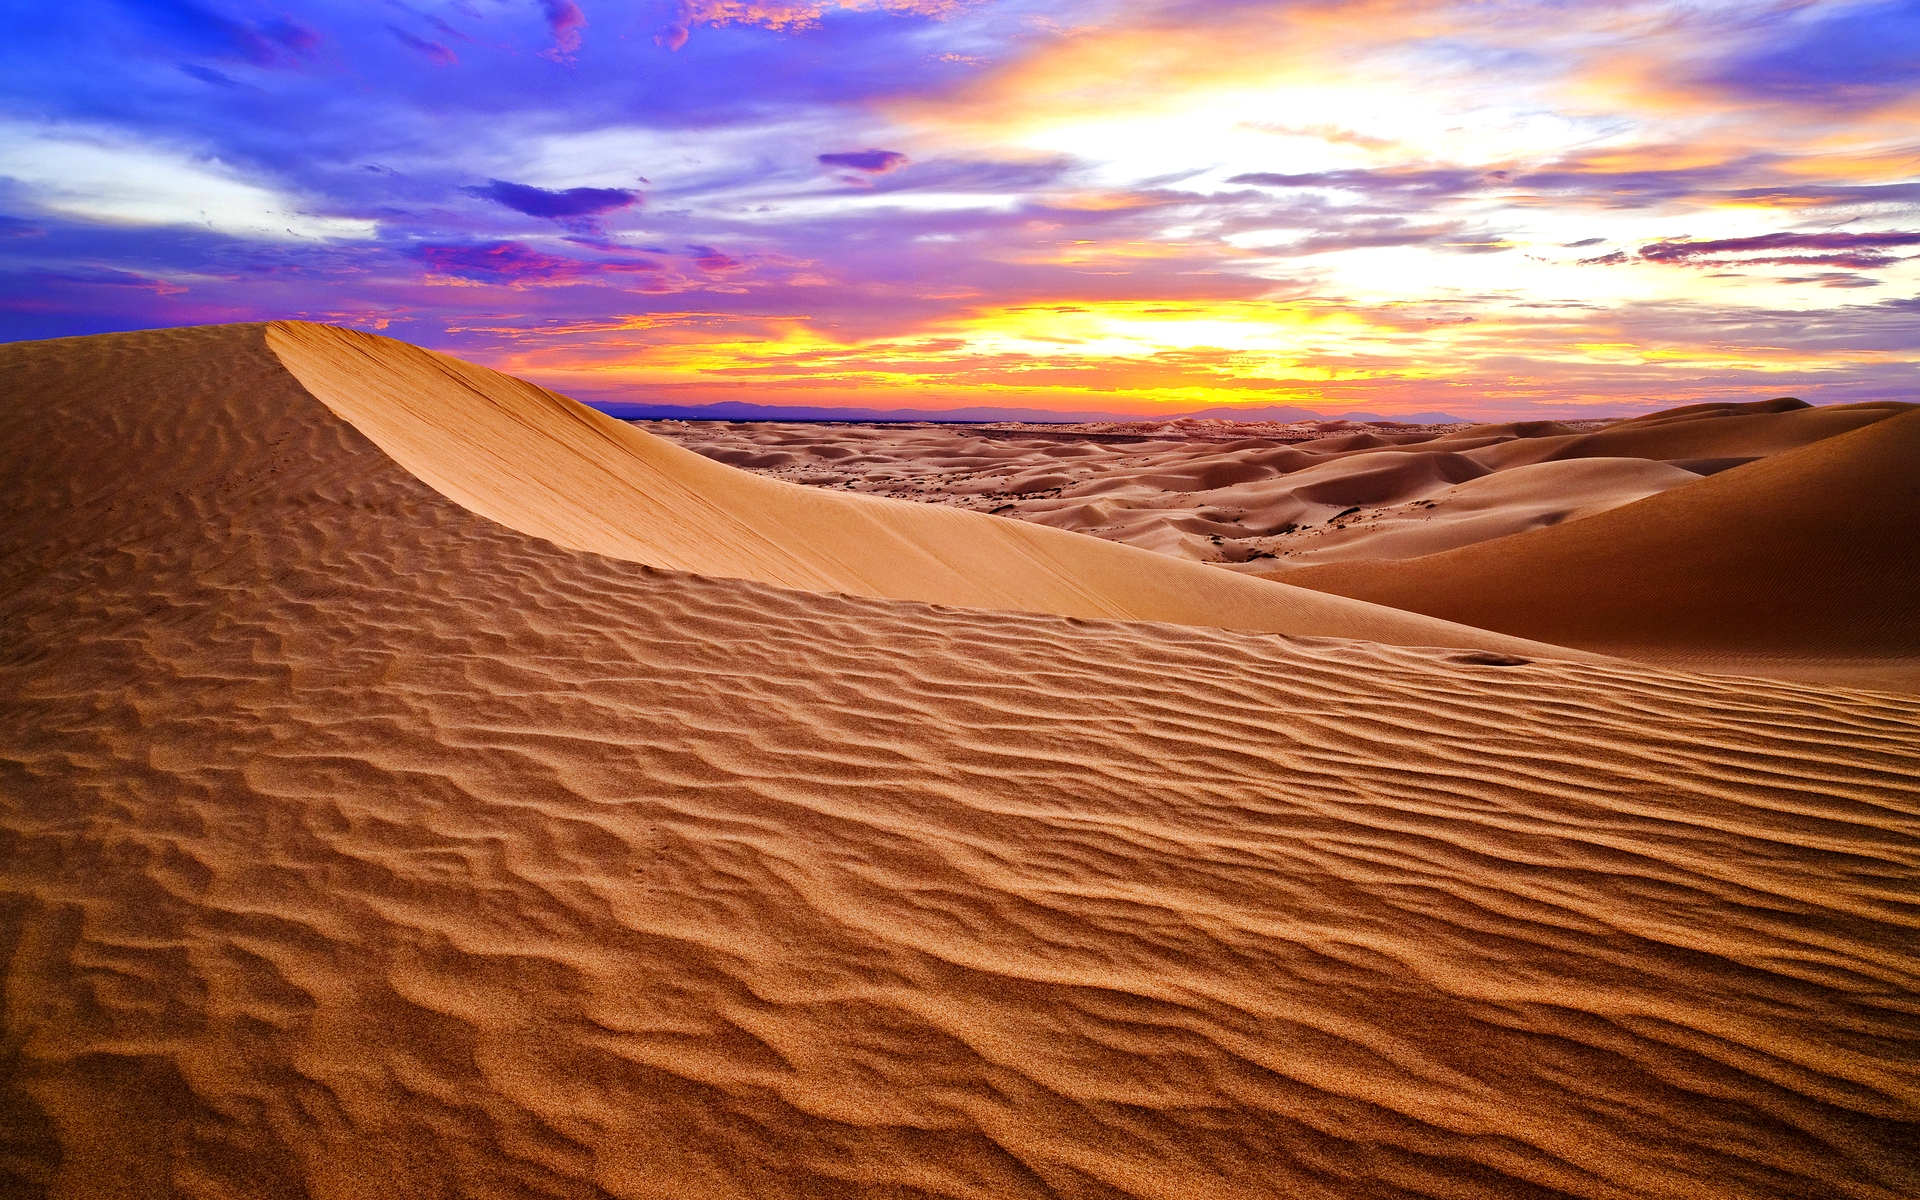 Desert Quality HD Background | Online Dream Book Dreamicus.com